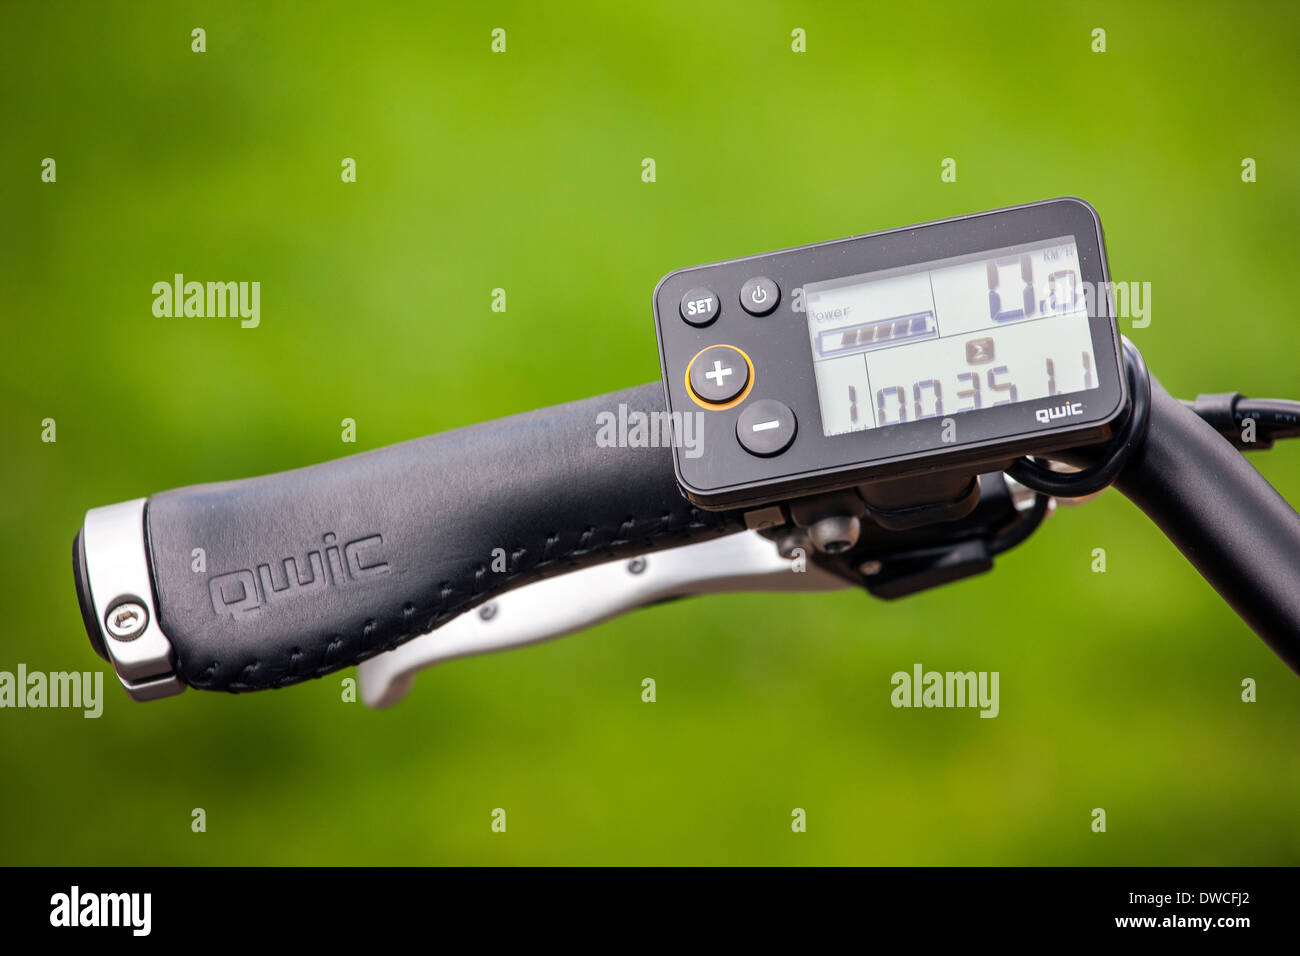 Digital display of pedelec / e-bike / electric bicycle showing speedometer with integrated battery level measurement - Stock Image